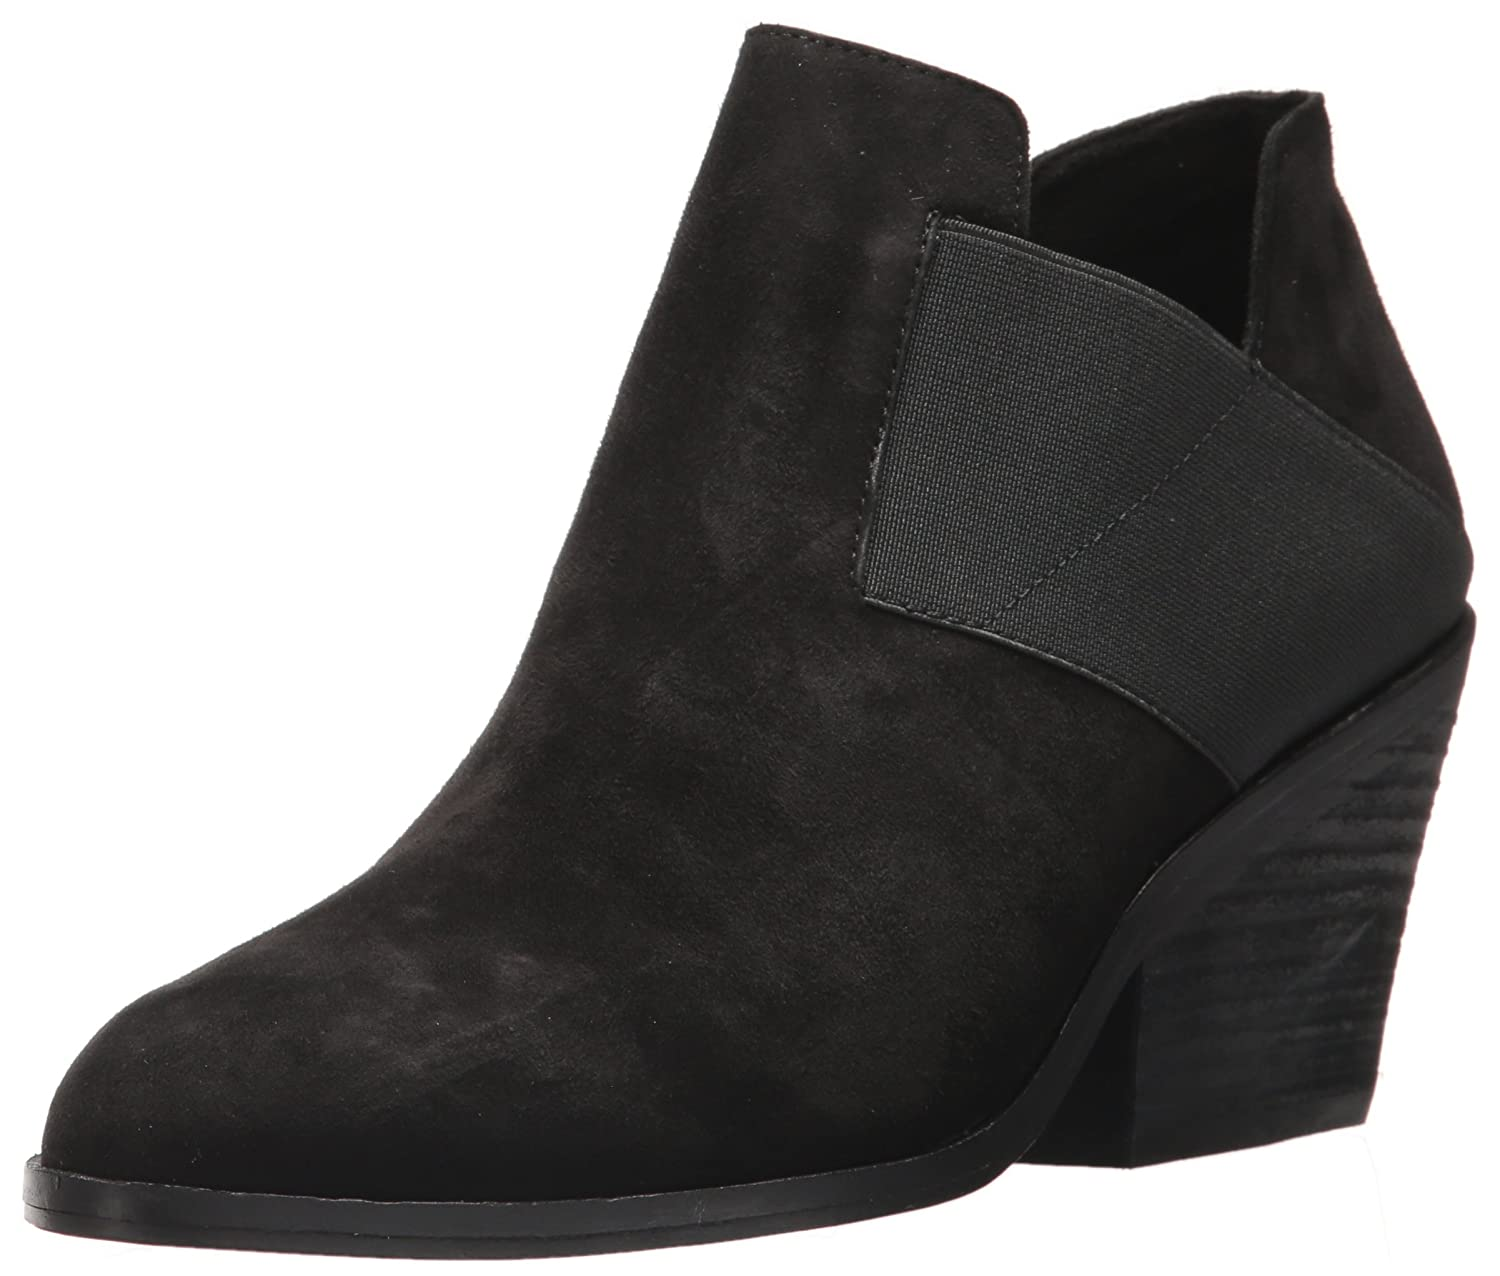 Eileen Fisher Women's Even Ankle Boot B06XRRGW7S 6 B(M) US|Black